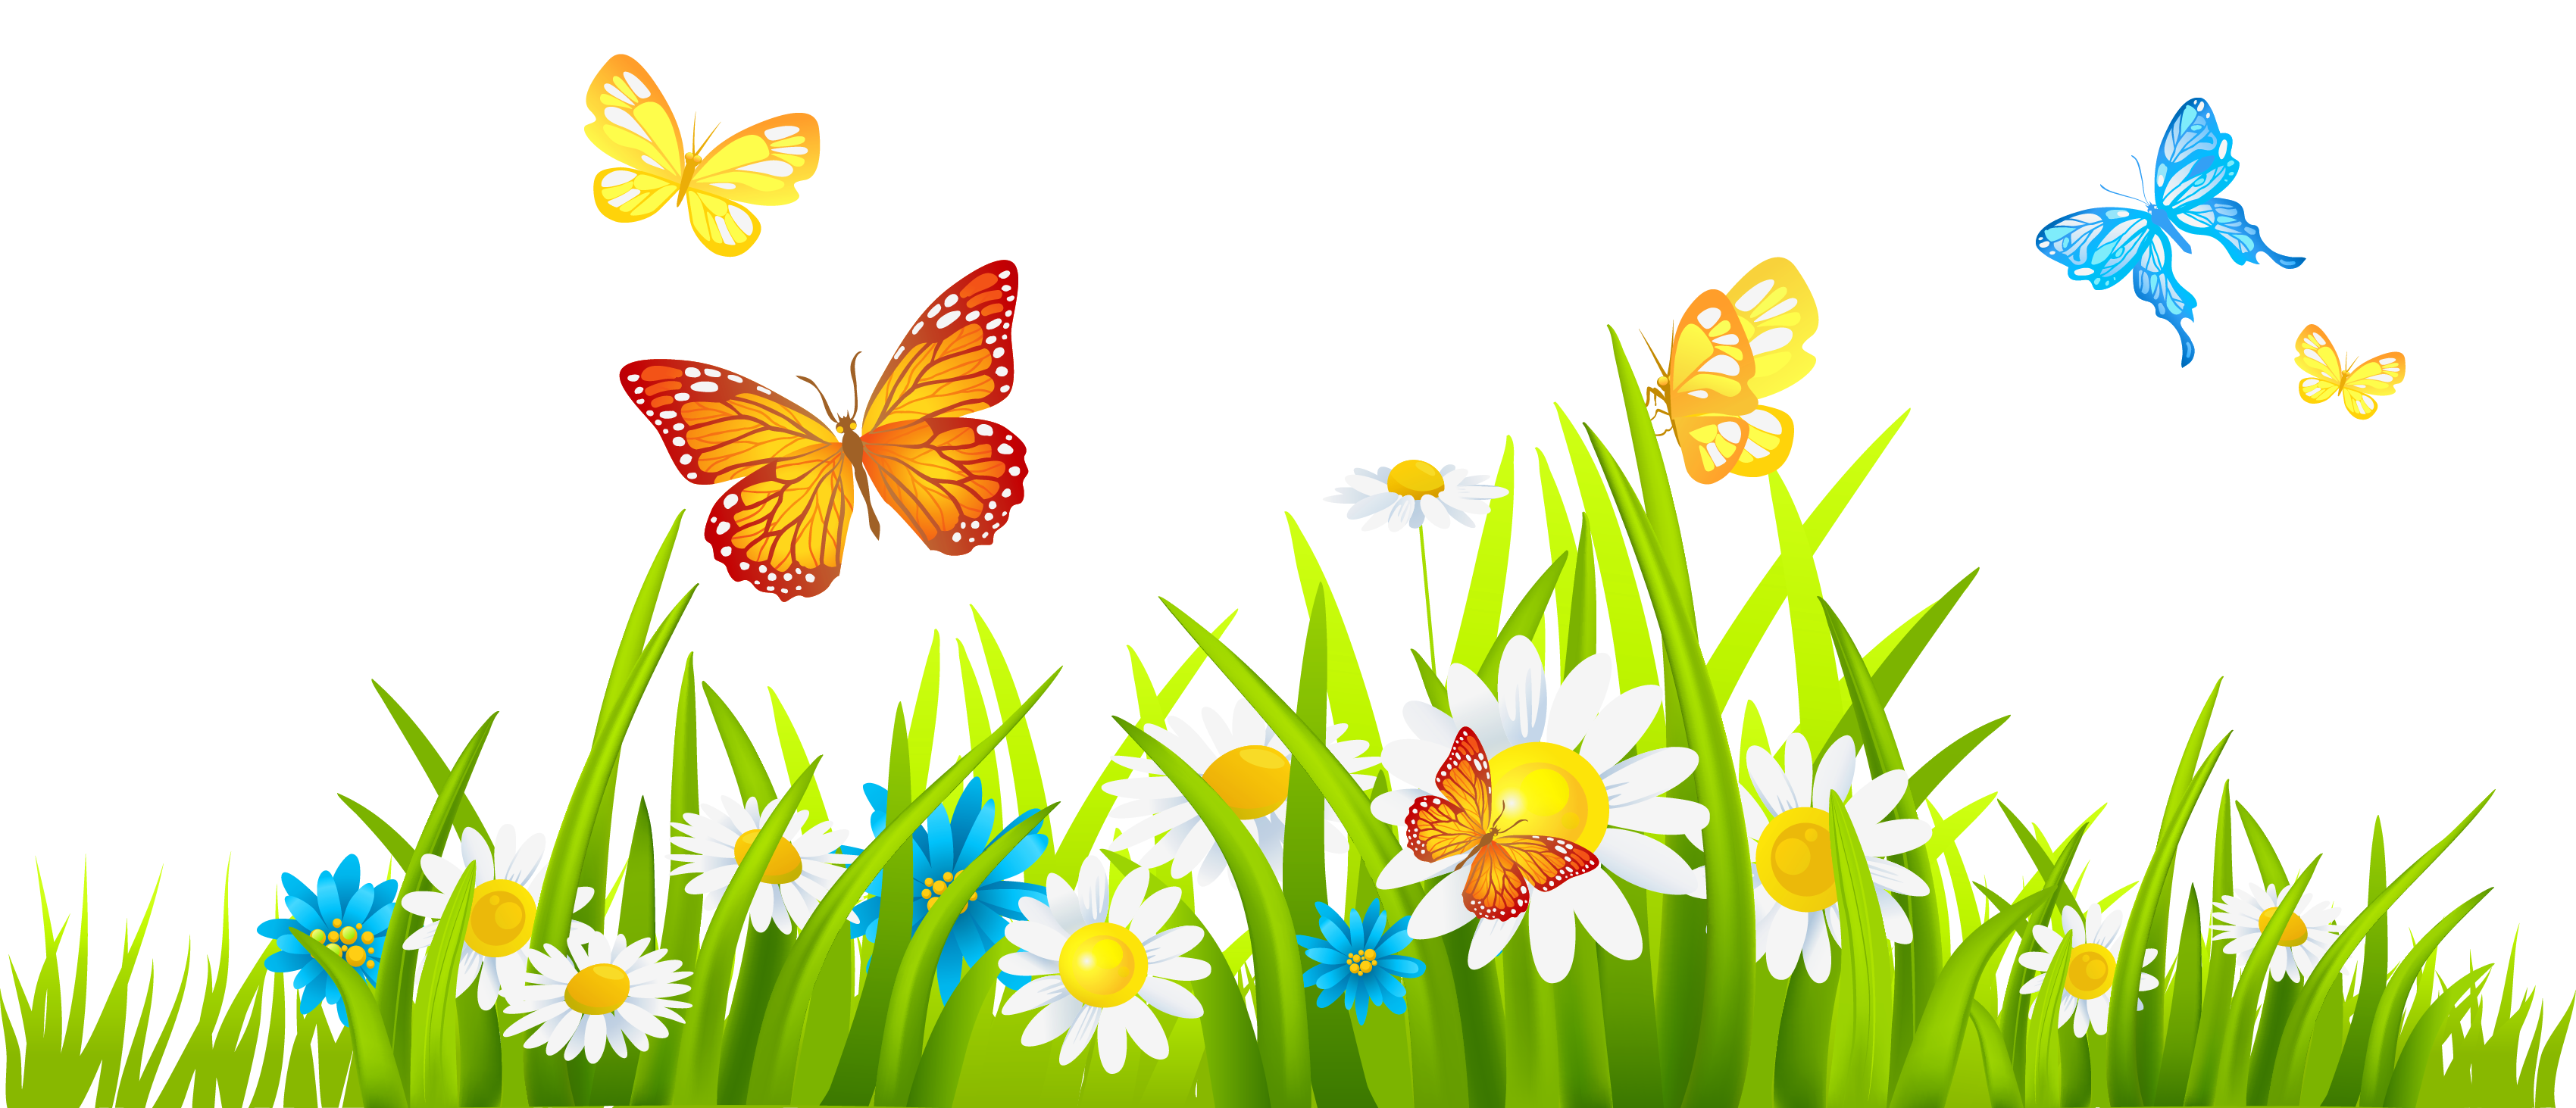 Grass ground with flowers. Gate clipart barbed wire